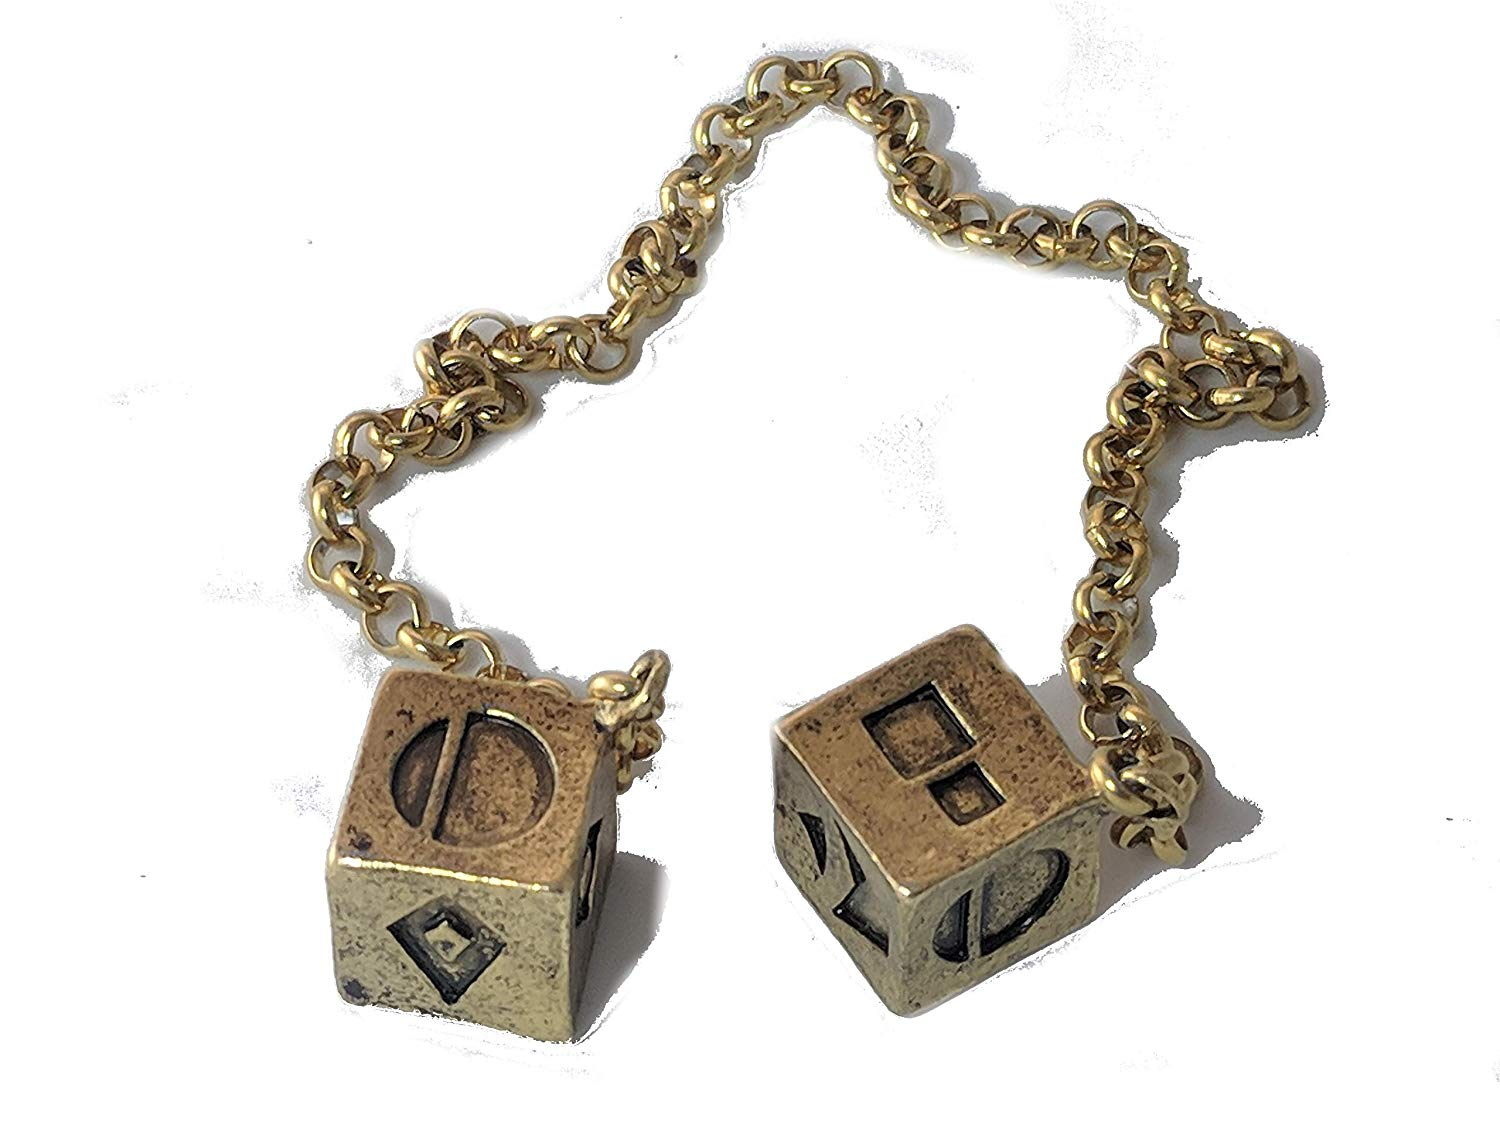 Solo: ASWS Gold Plated Smuggler's Dice 2